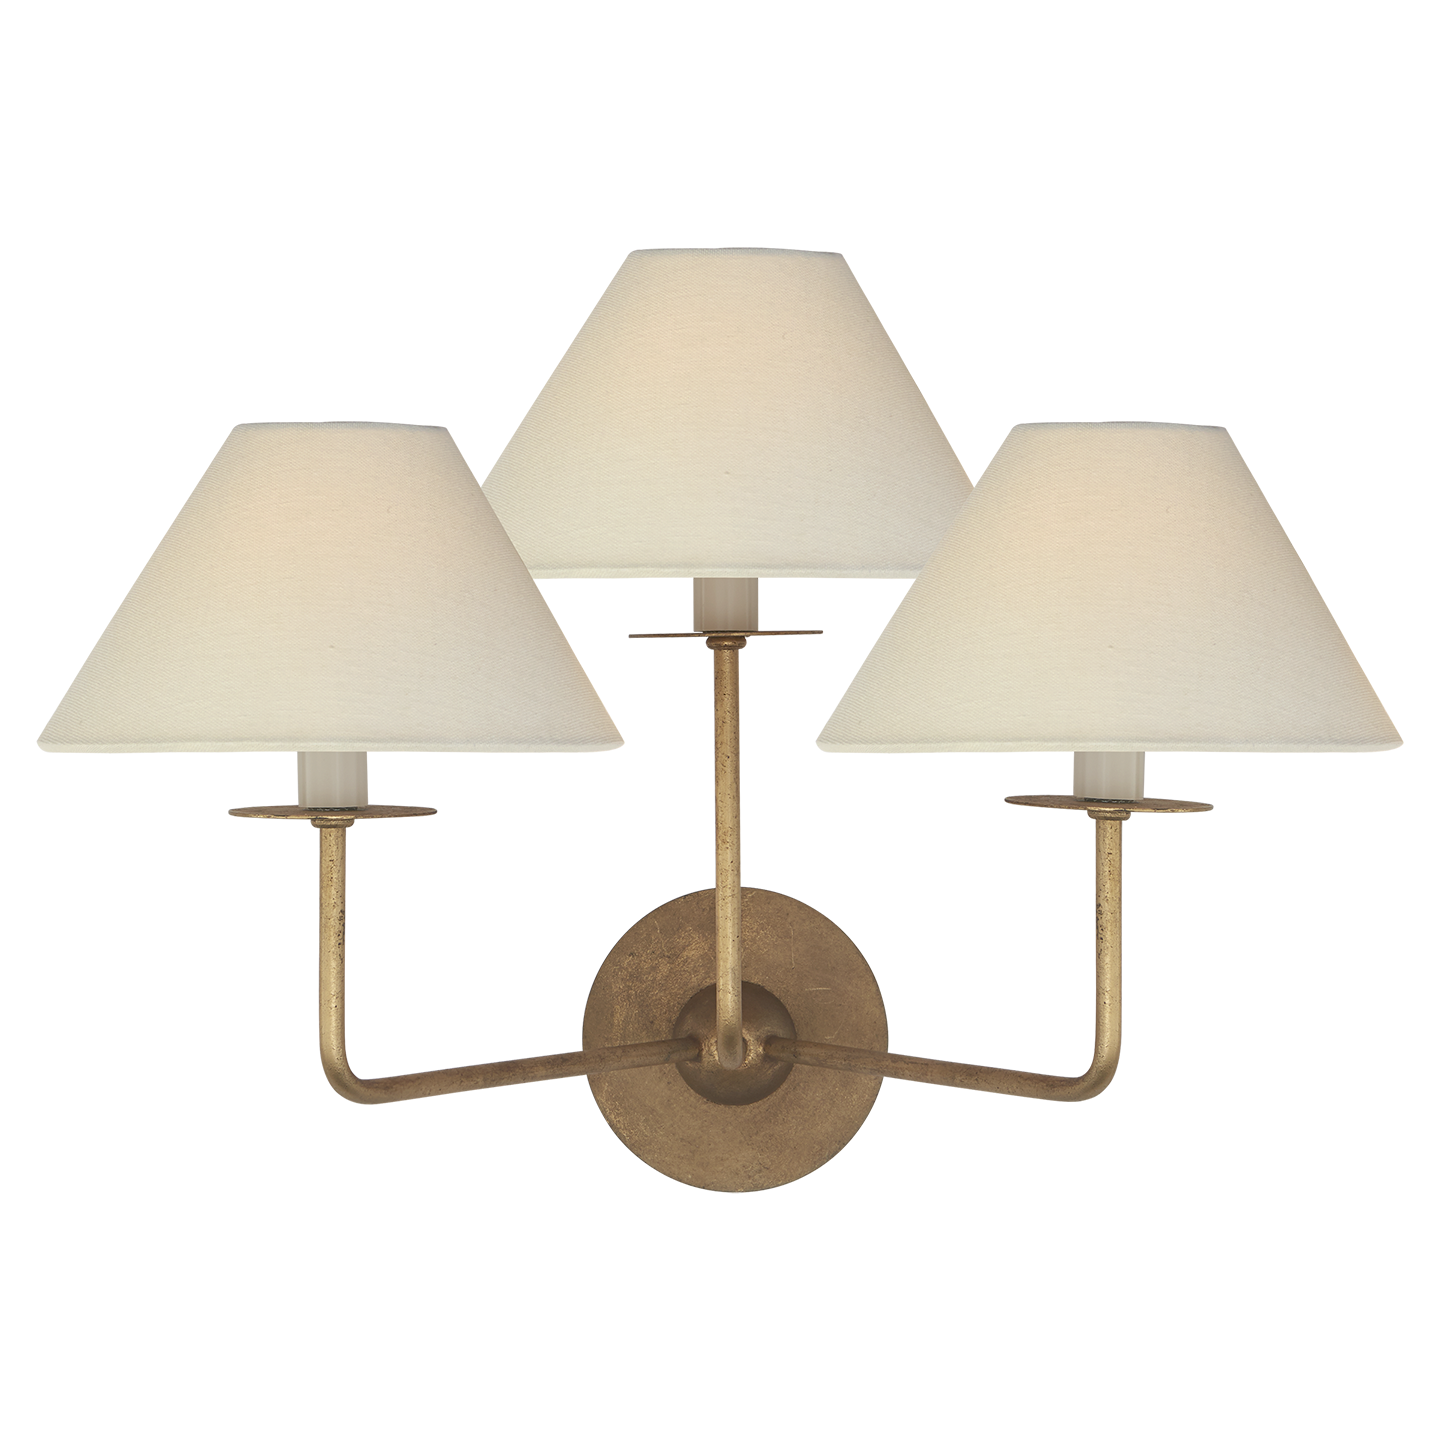 "Kelley Medium Triple Sconce in Gilded Iron with Linen Shades Item # NW 2070GI-L   Designer: Niermann Weeks Height: 14.25"" Width: 19"" Extension: 12.75"" Backplate: 5"" Round Socket: 3 - E12 Candelabra Wattage: 3 - 40 B"